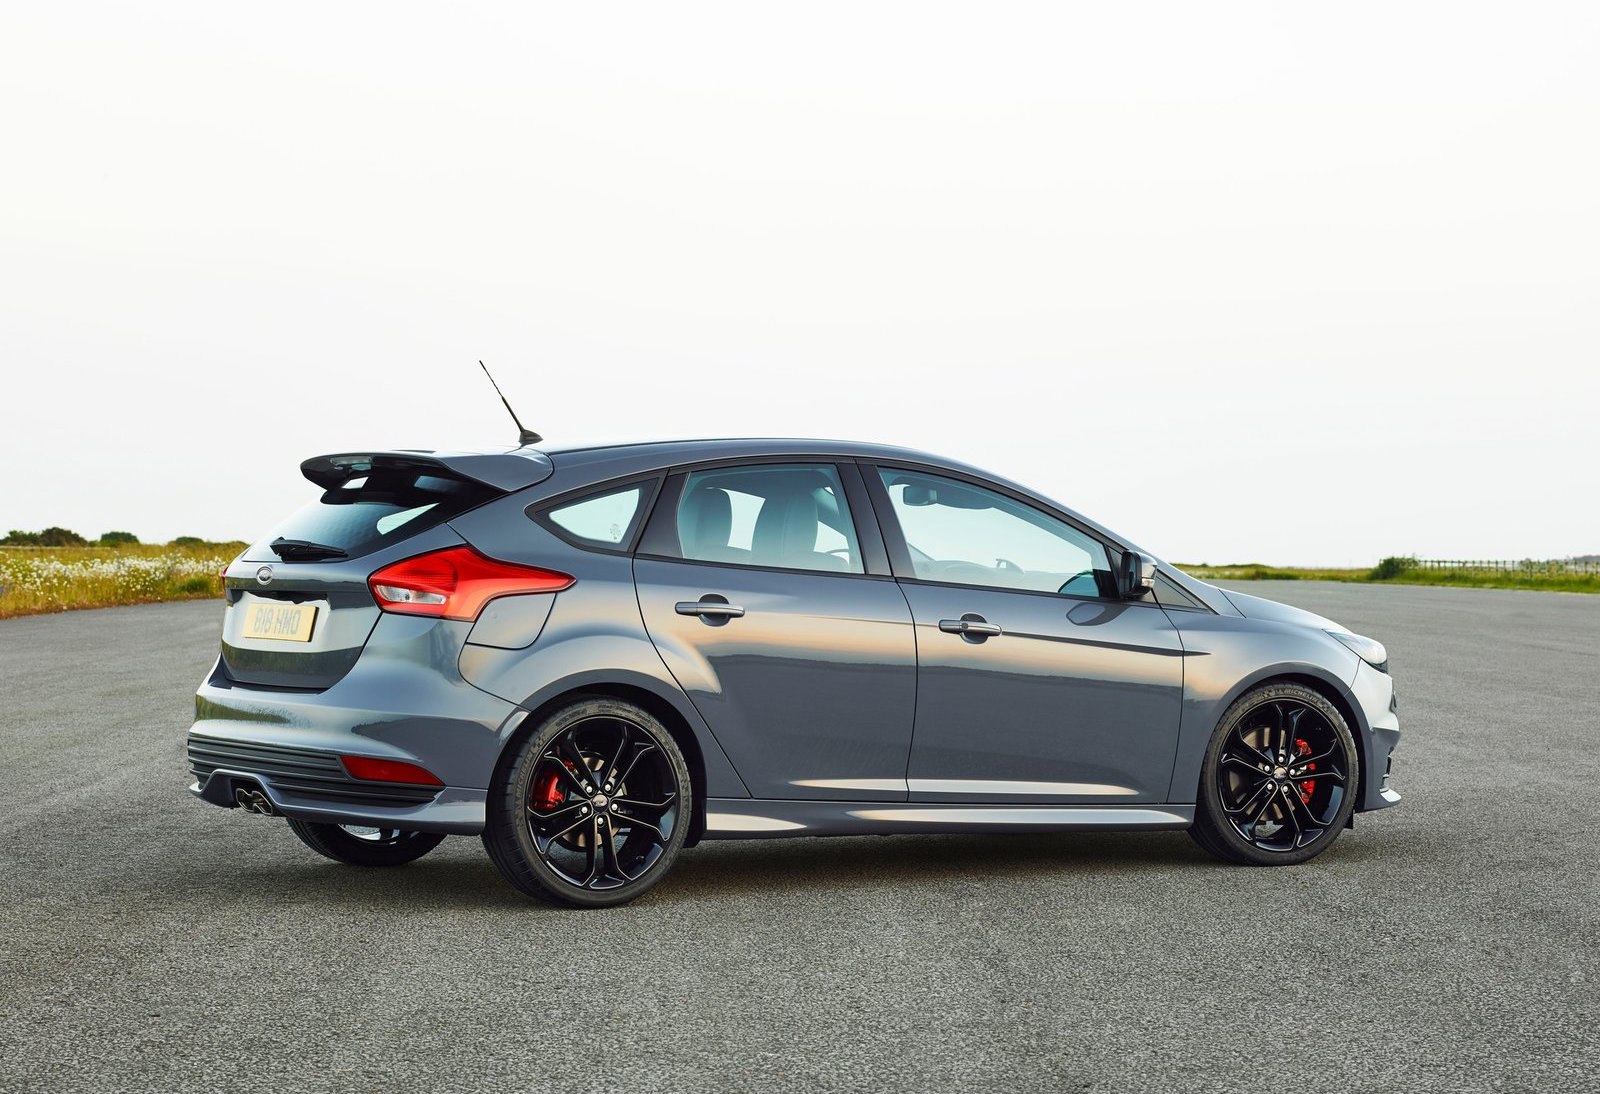 2015 ford focus st here s how much it costs in europe autoevolution. Black Bedroom Furniture Sets. Home Design Ideas